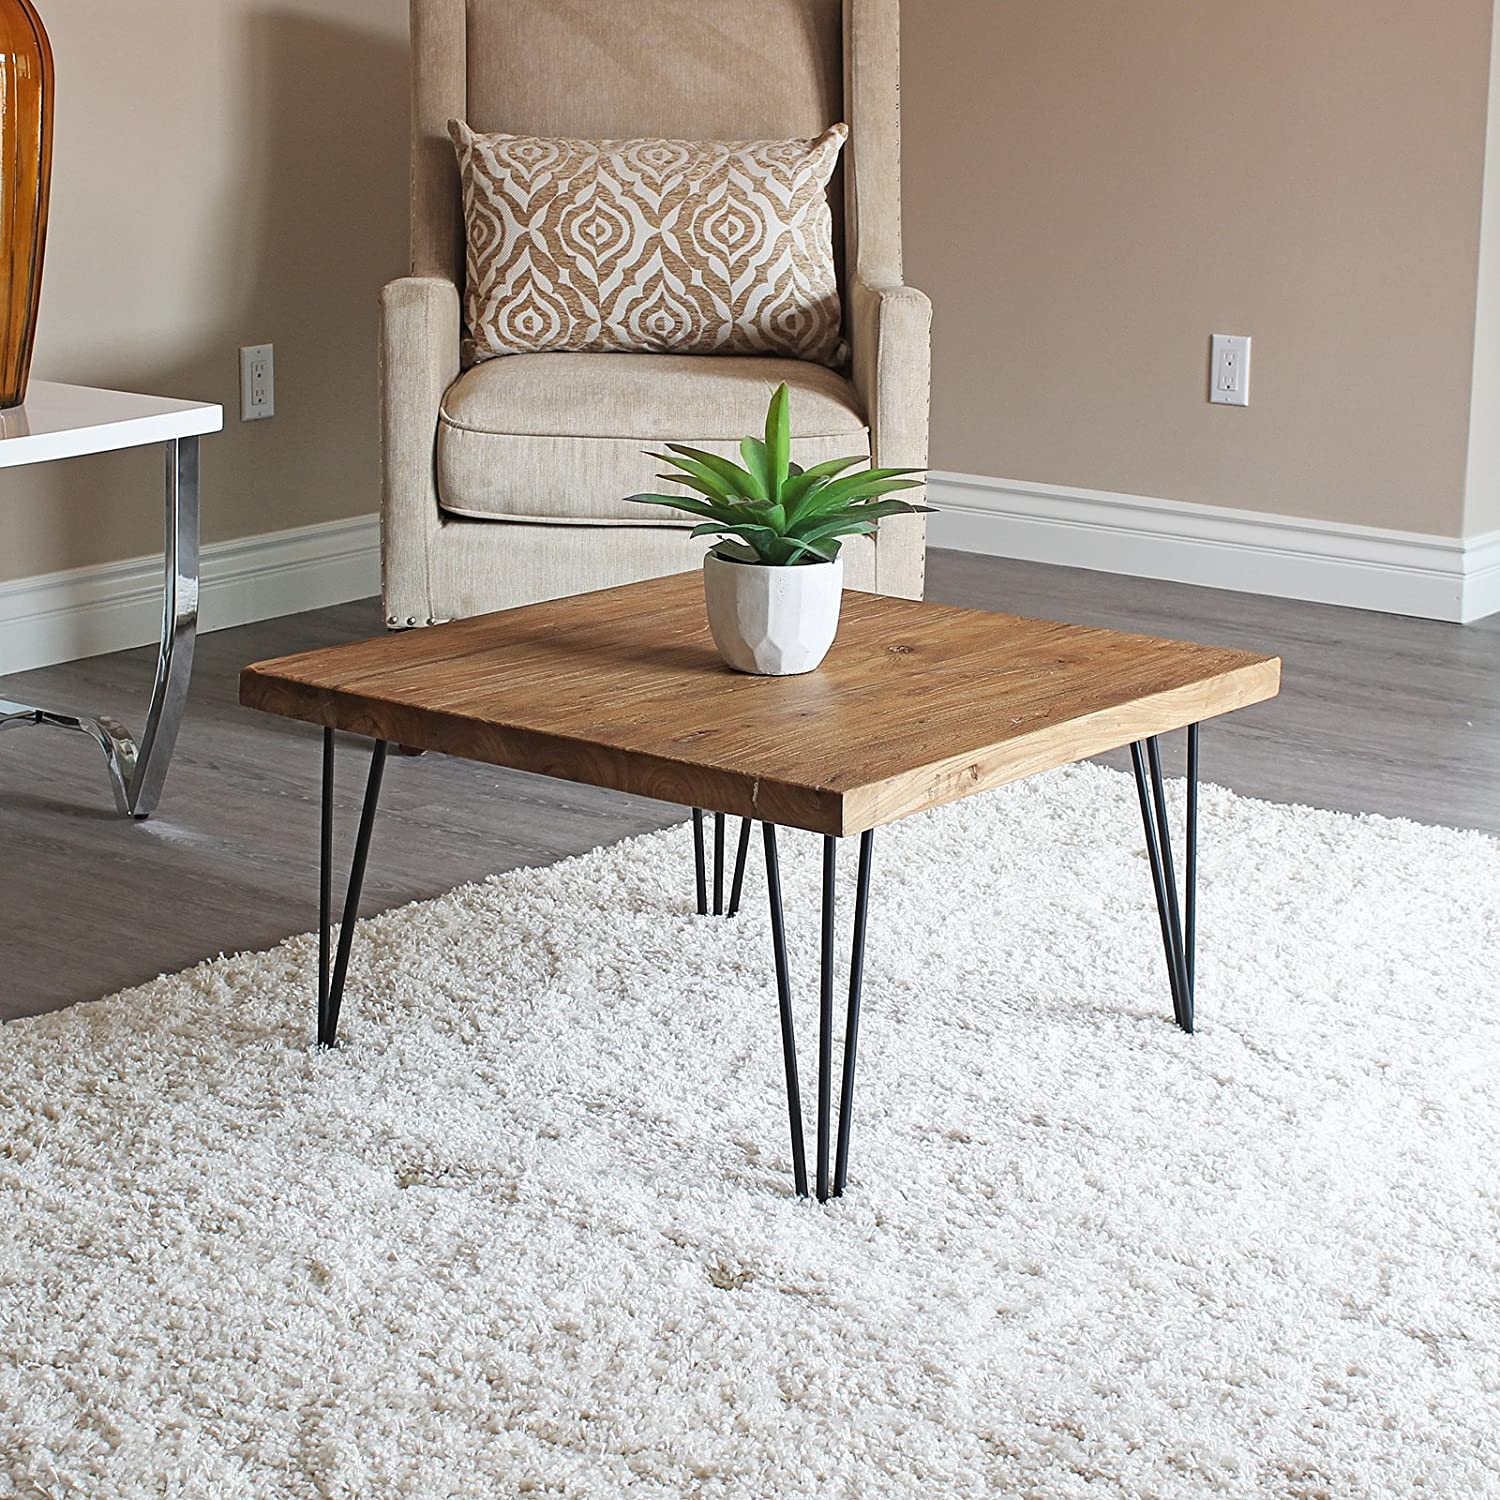 WELLAND Rustic Square Old Elm Coffee Table: Kitchen & Dining